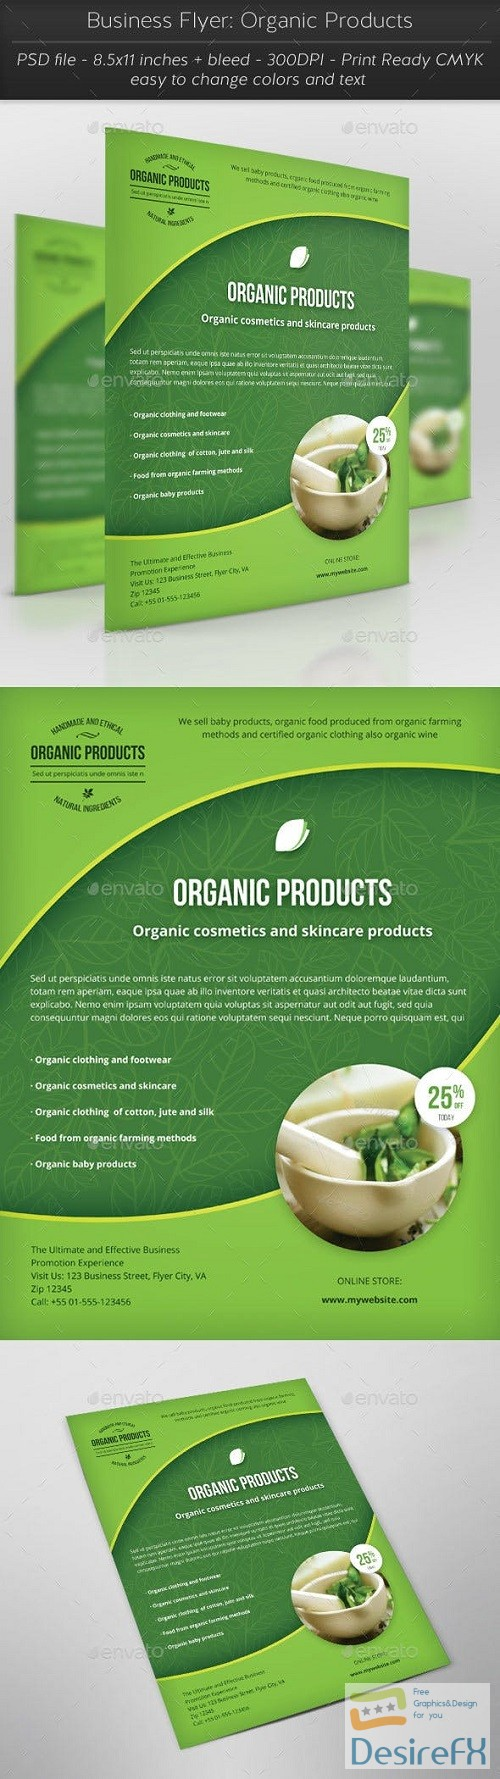 Business Flyer: Organic Products 16368010